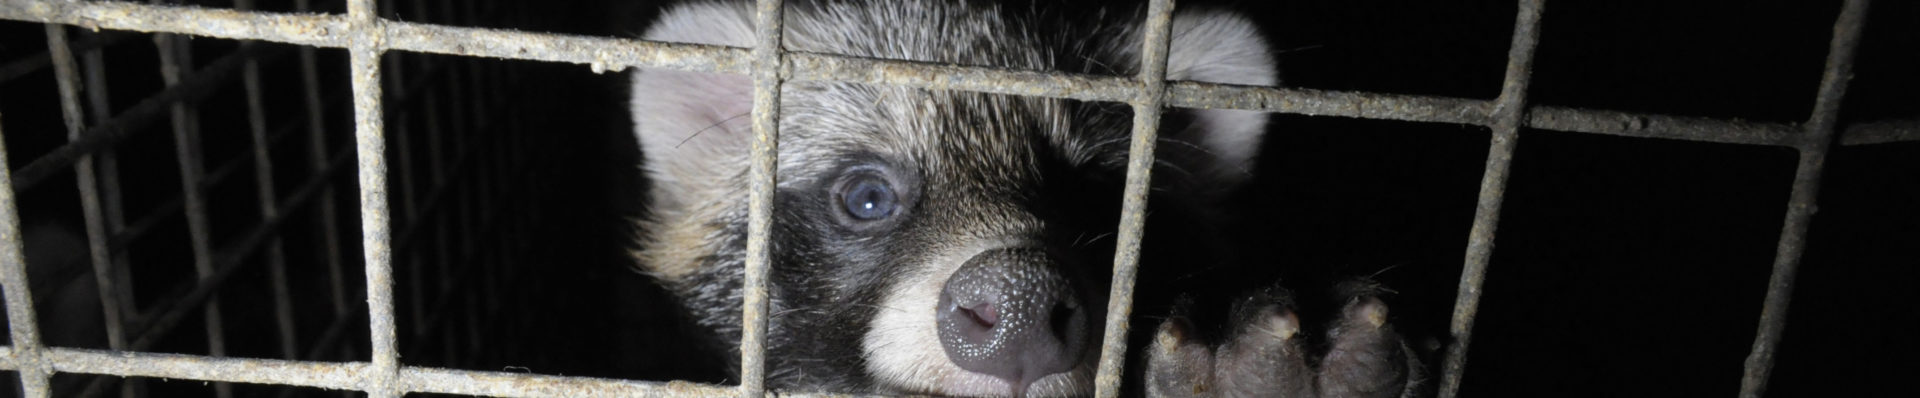 Severe animal cruelty on Polish fur farms revealed